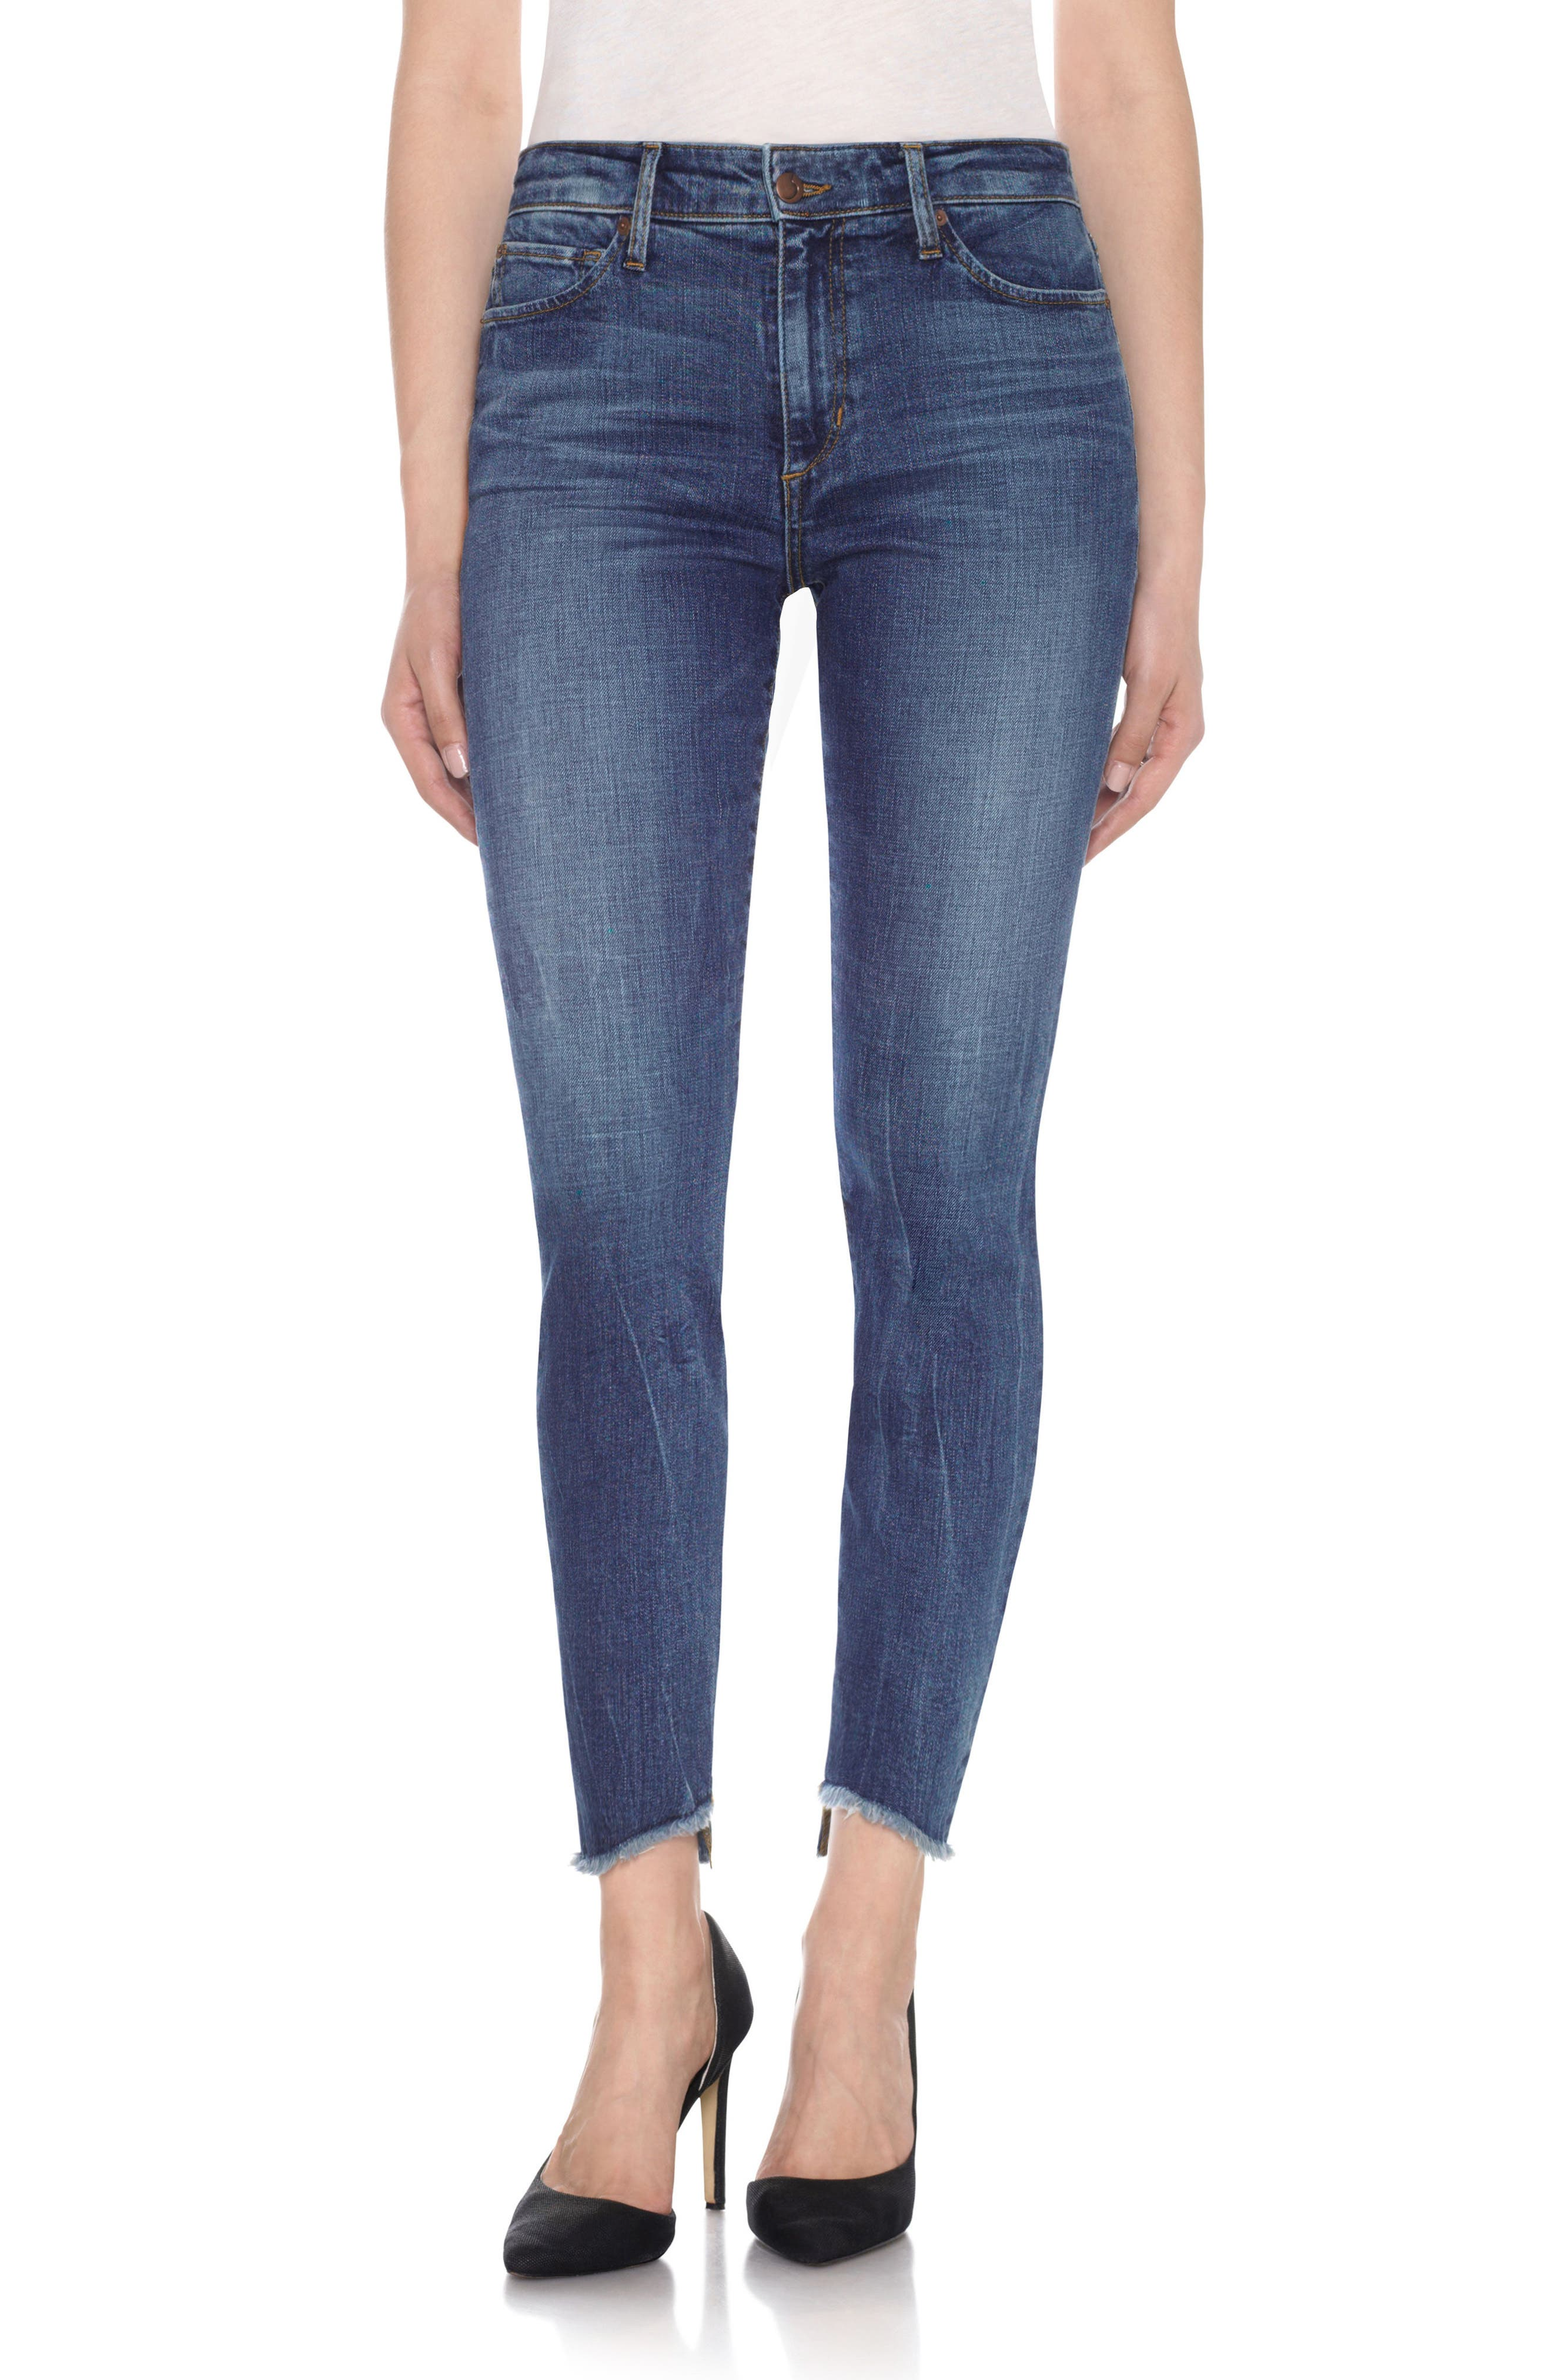 Charlie - Blondie High Rise Ankle Skinny Jeans,                             Main thumbnail 1, color,                             462